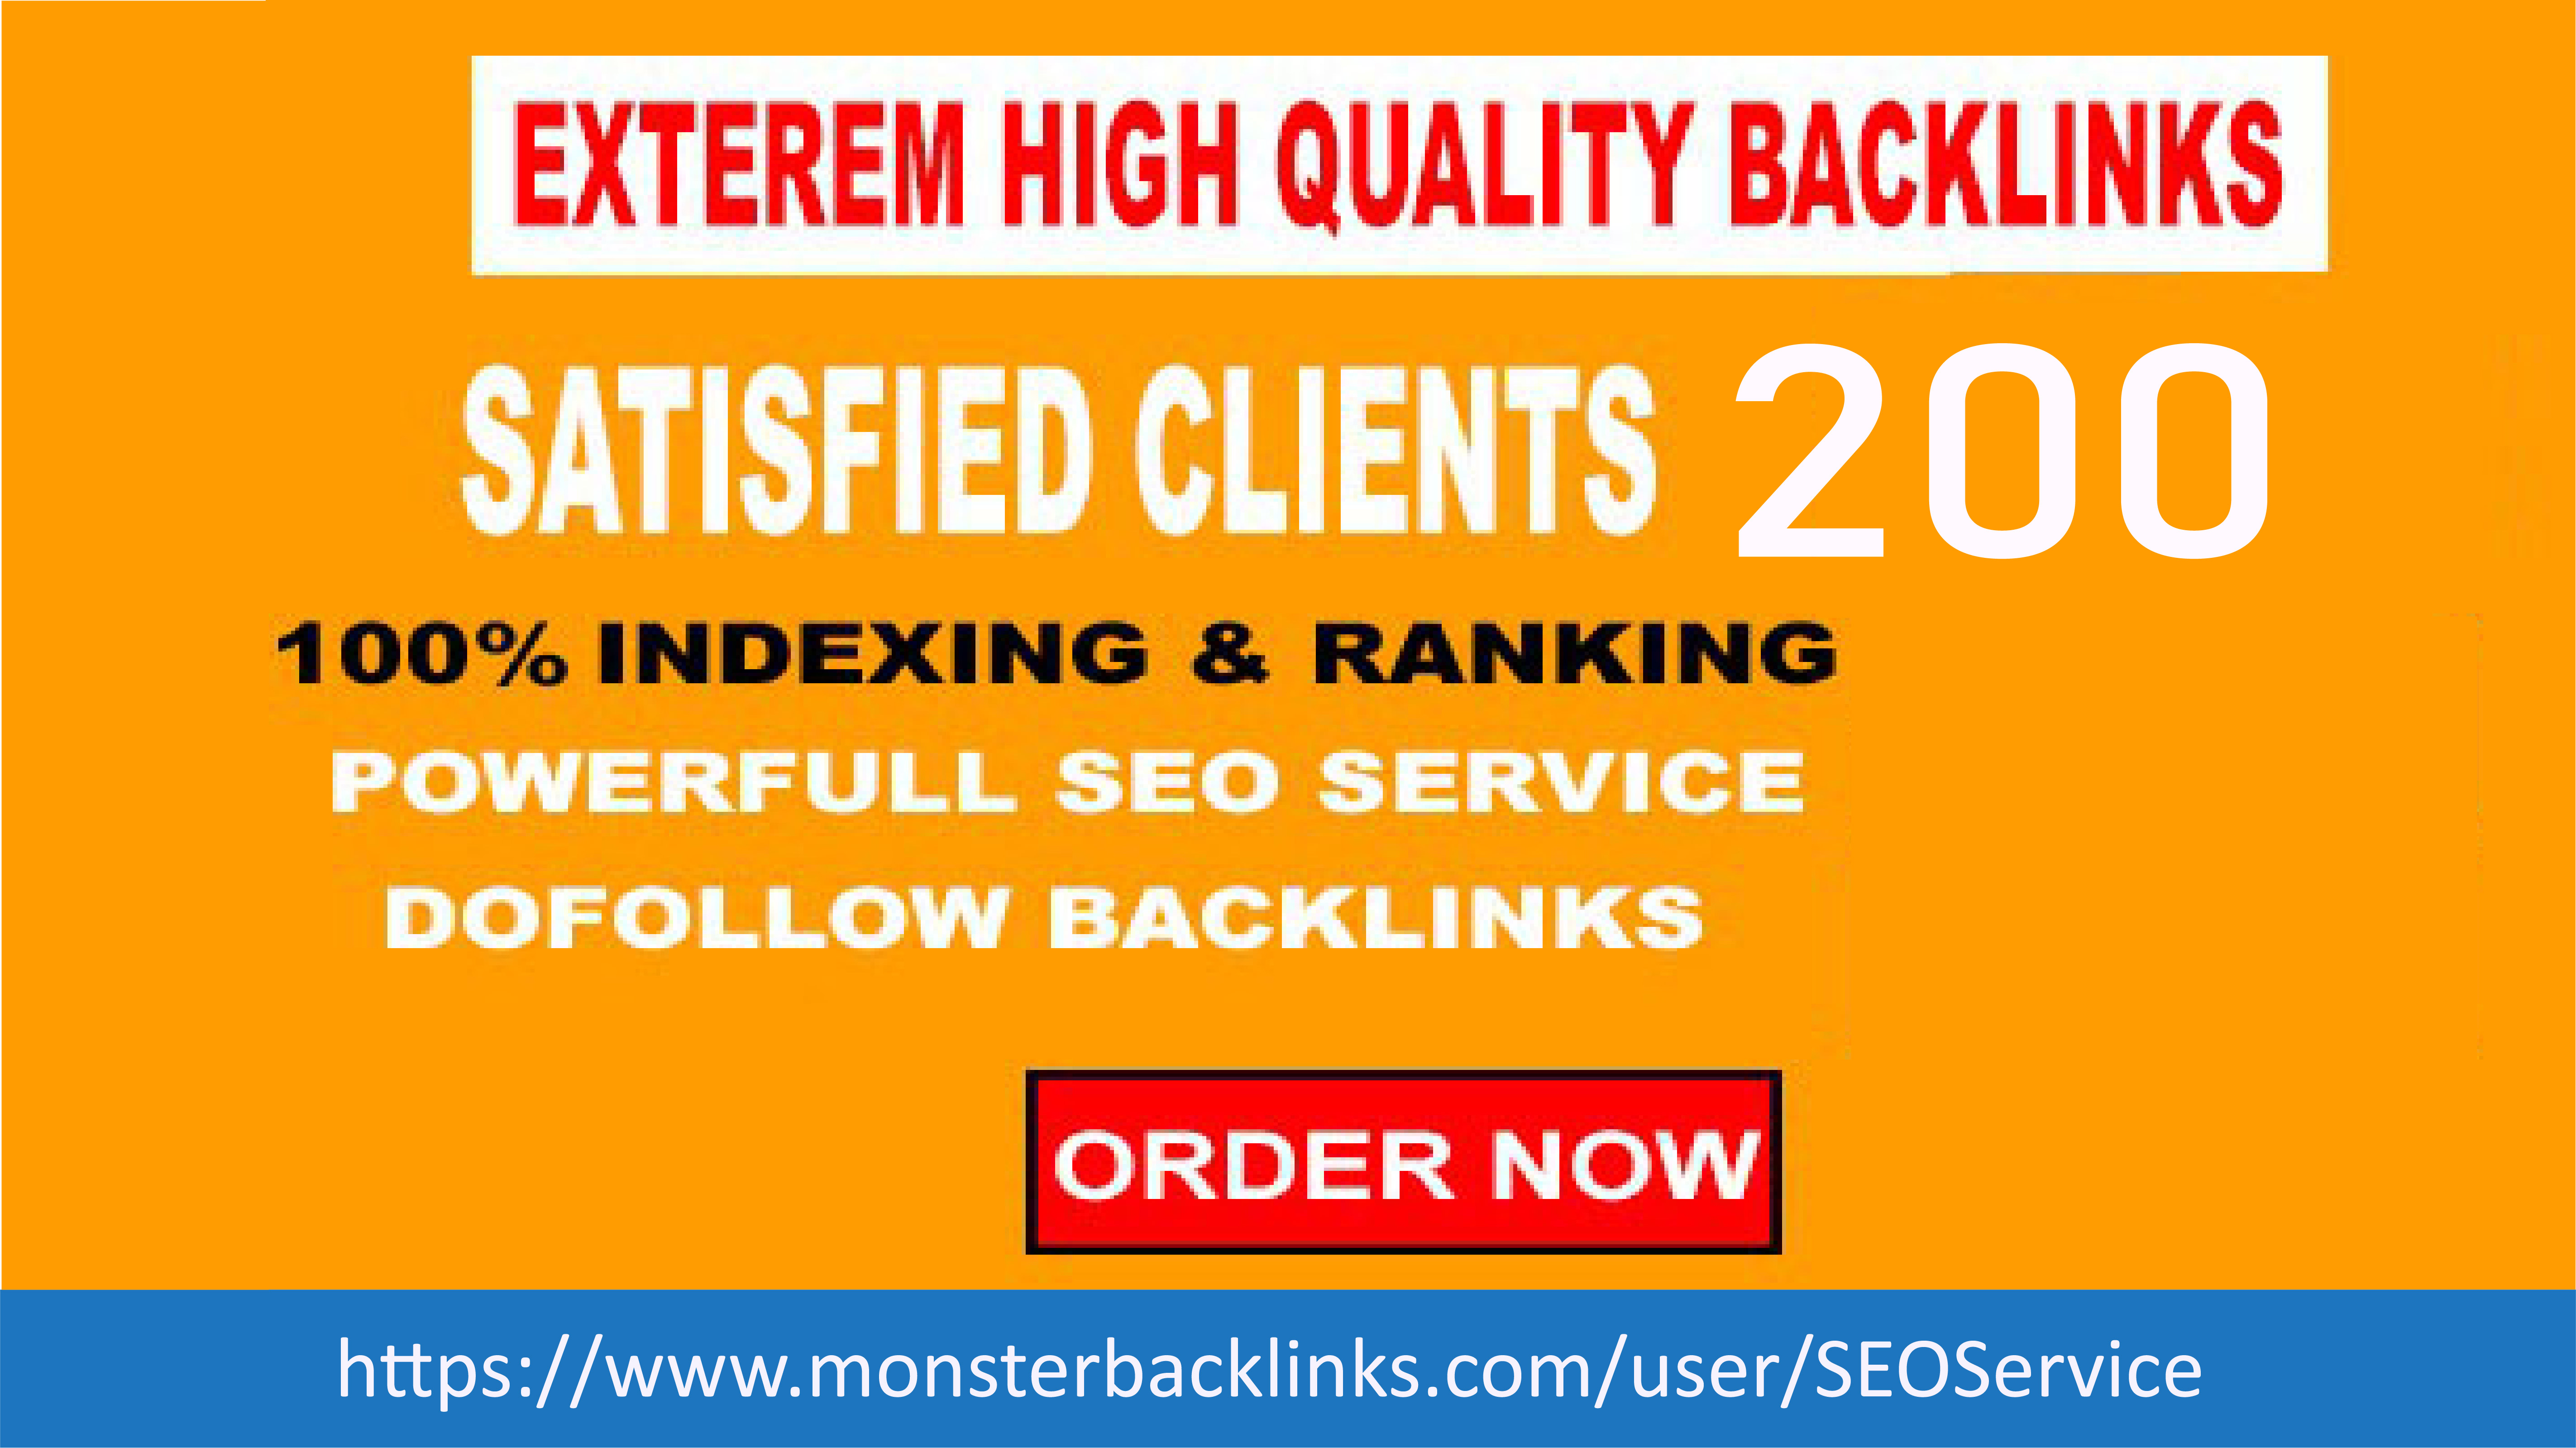 create Profile 200 contextual tiered backlinks for SEO Top ranking